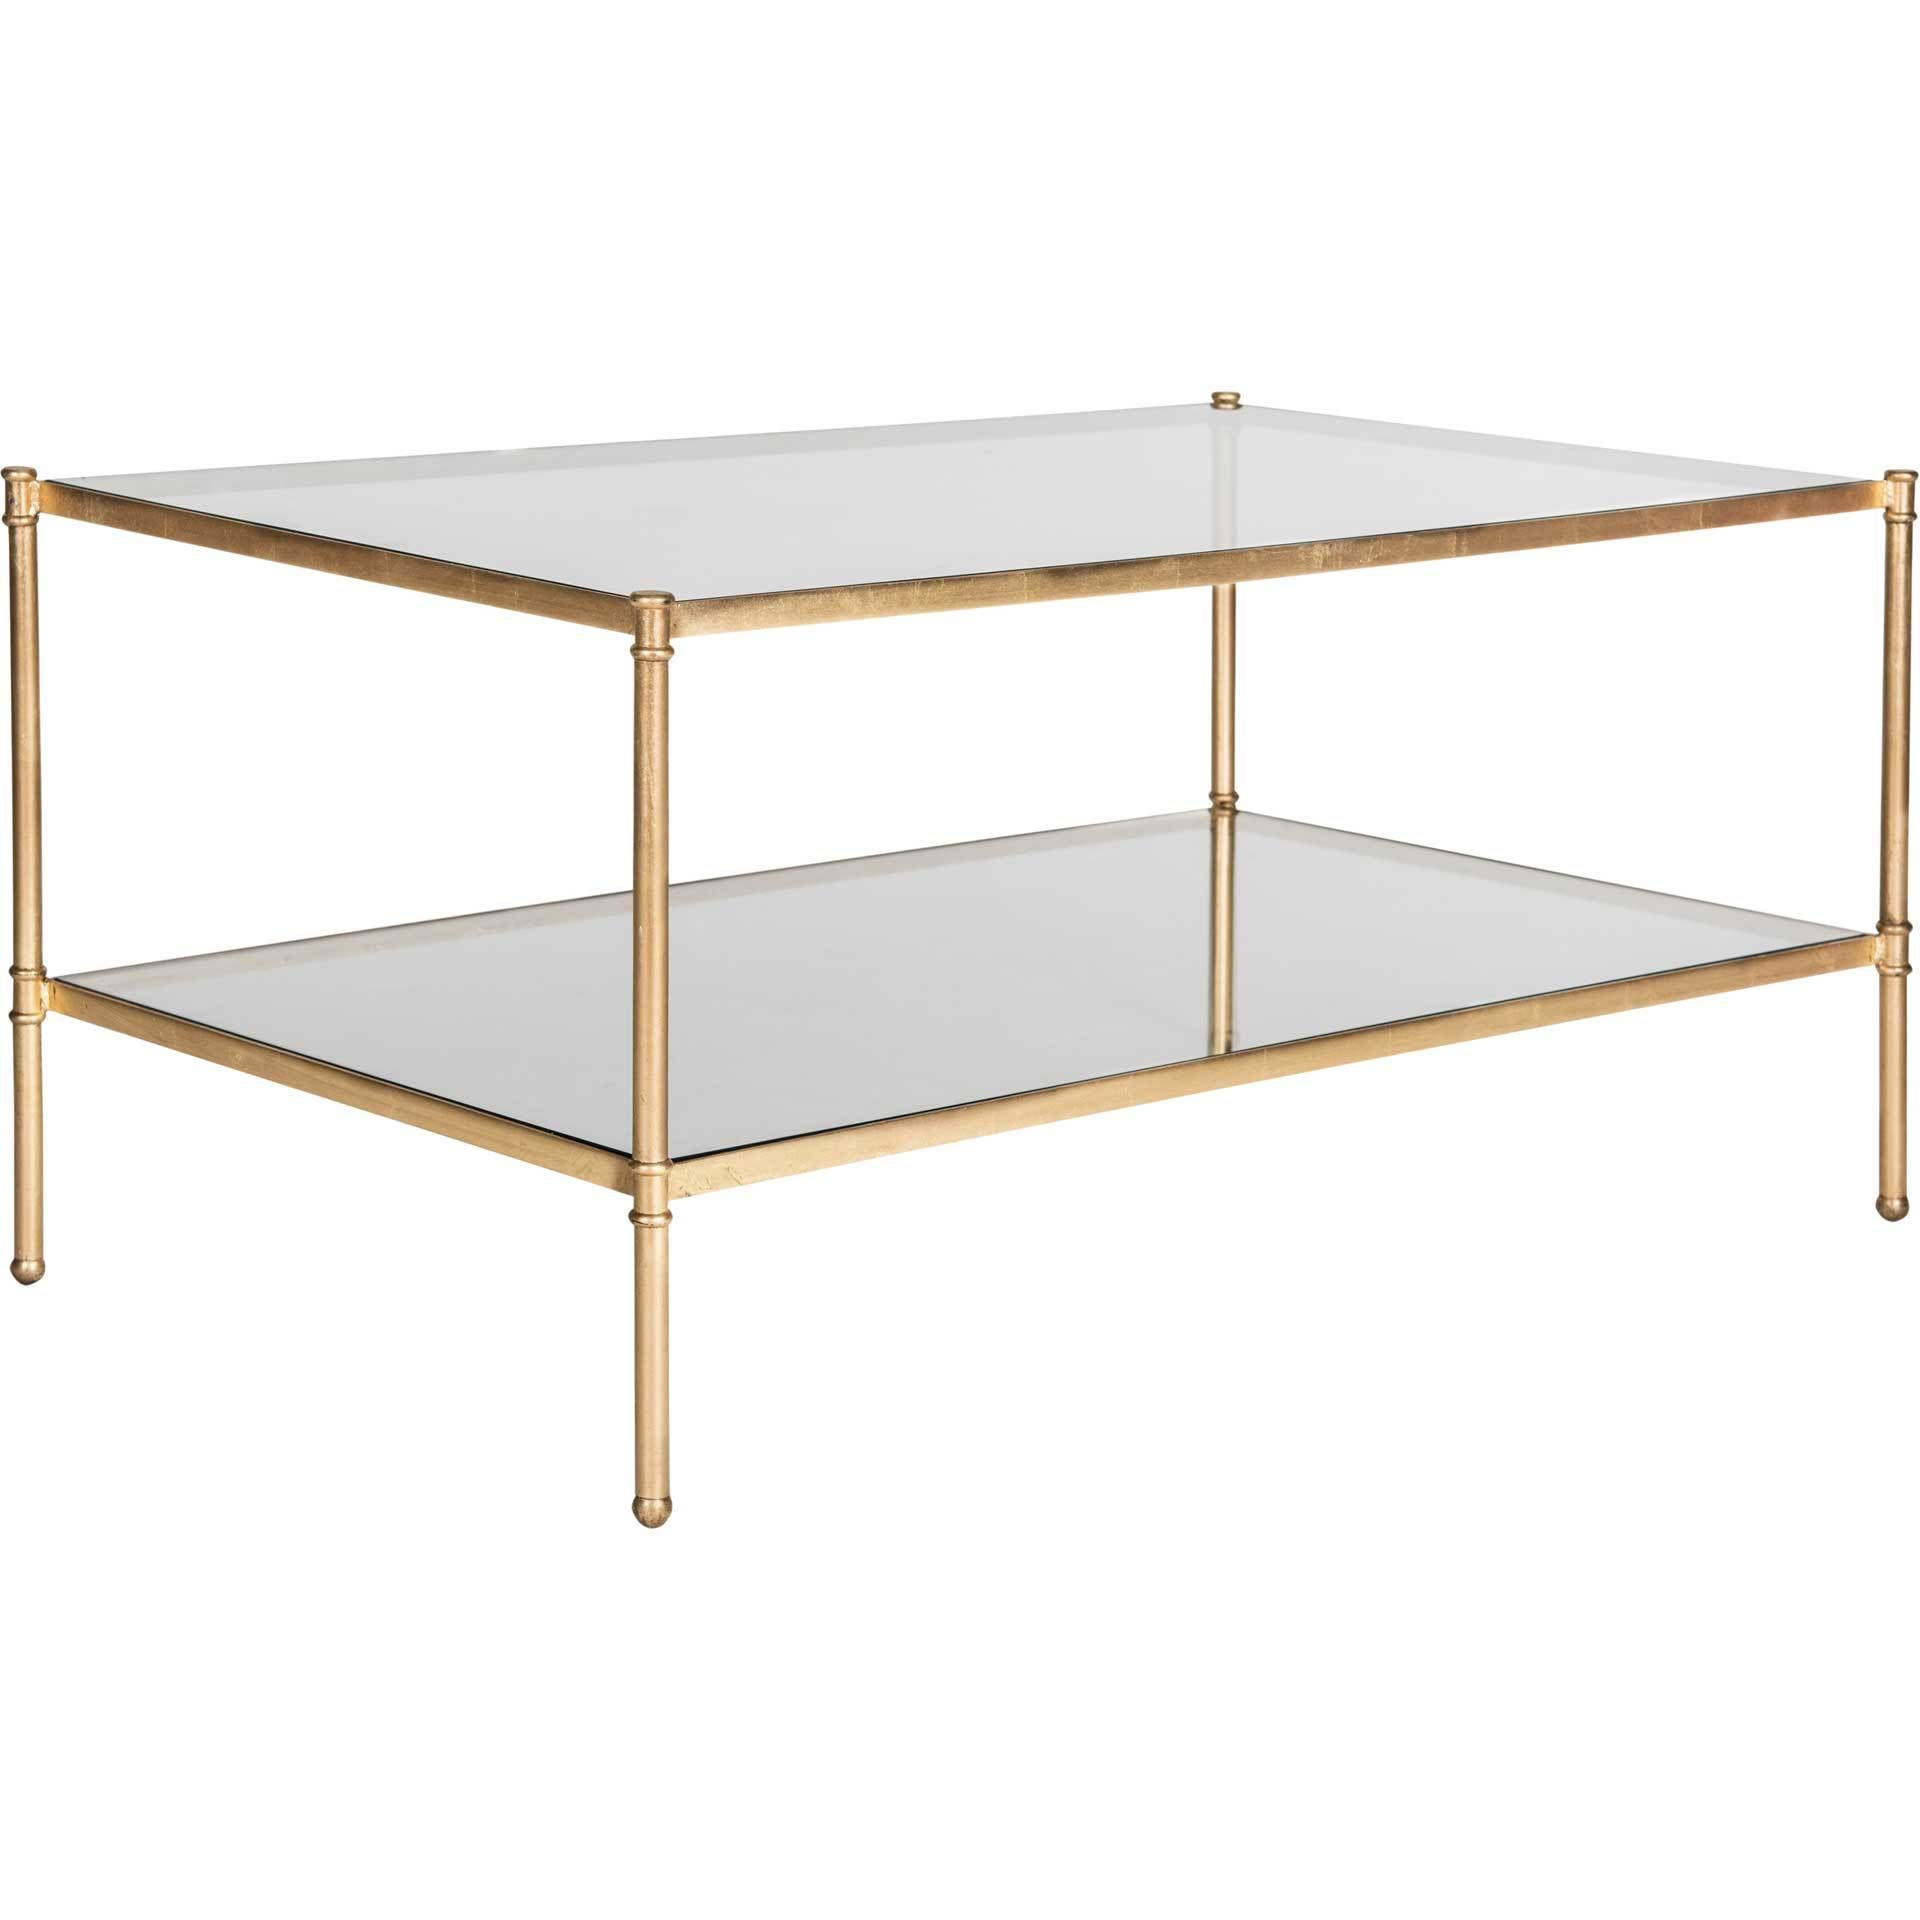 Asaf Coffee Table Antique Gold Coffee Table Mirrored Coffee Tables Coffee Table With Storage [ 1920 x 1920 Pixel ]